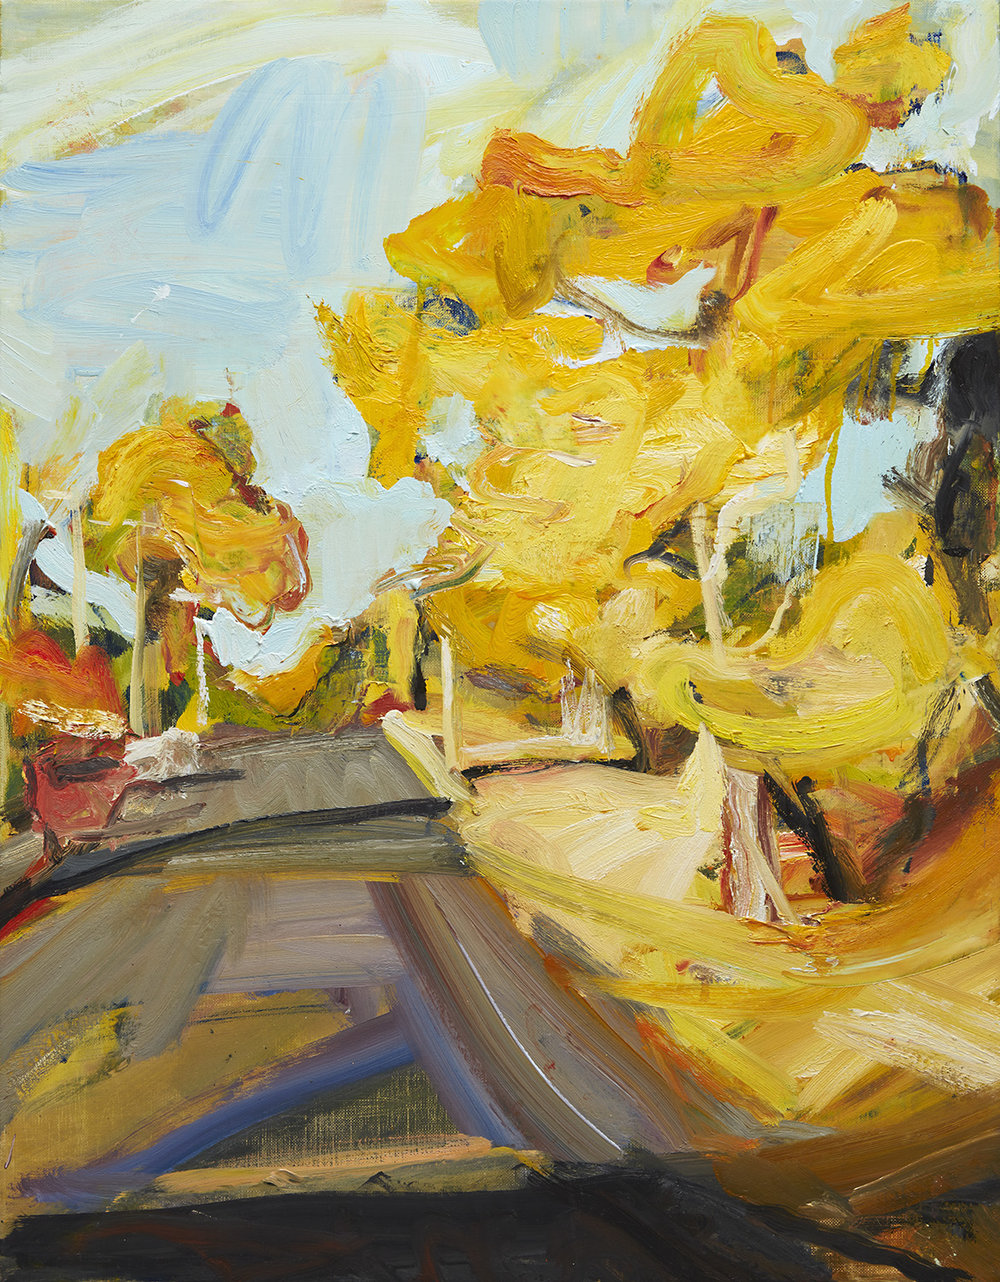 BLACKHEATH STREET LANDSCAPE 2014 oil on linen 91x71cm